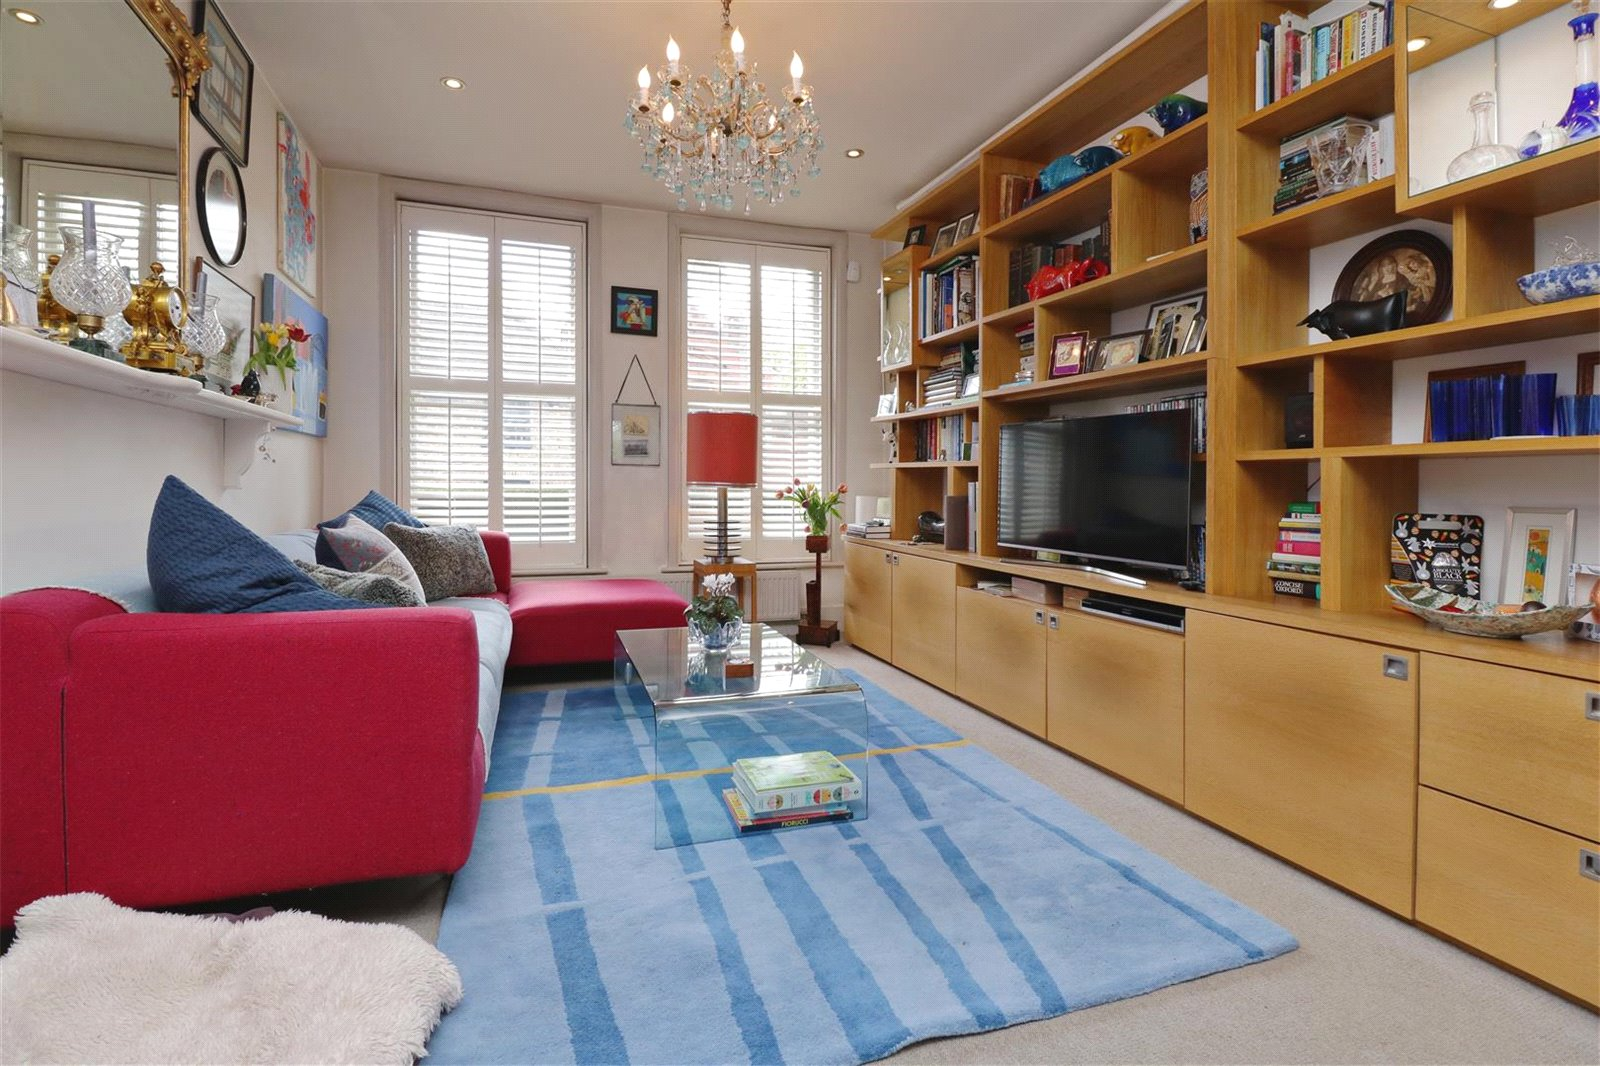 House for sale in Highgate, N6 5HX  - Property Image 3